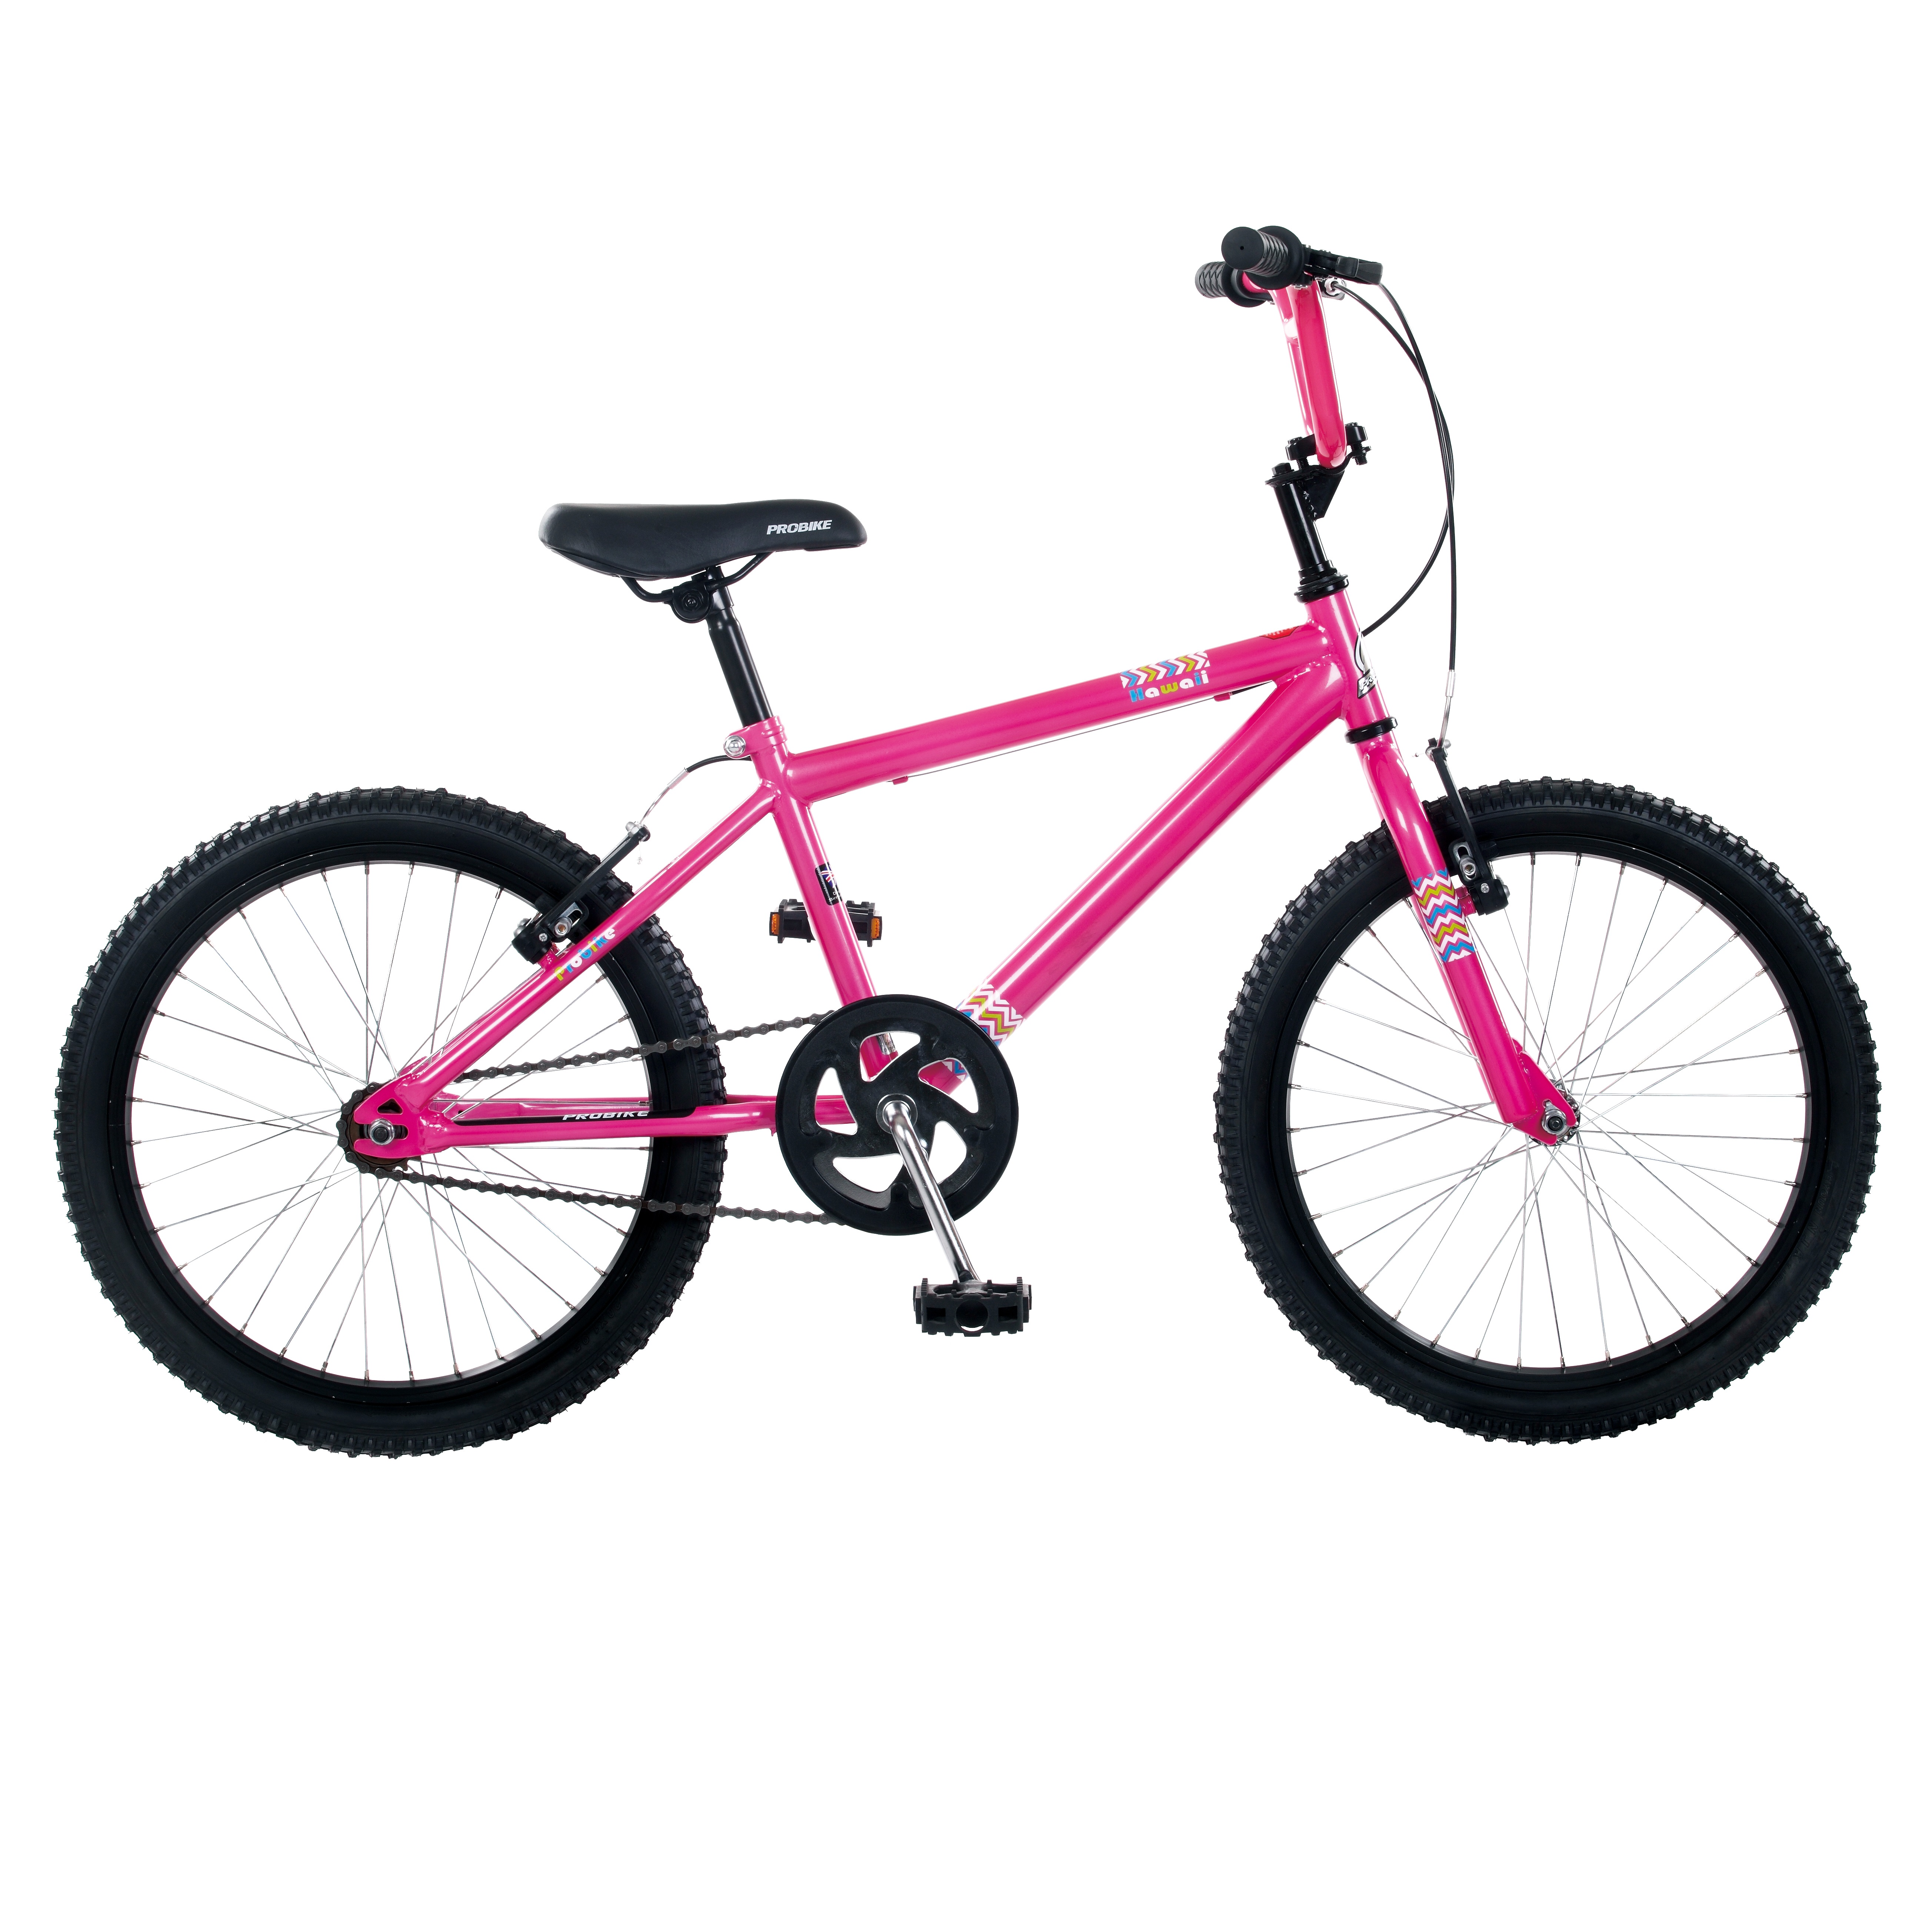 Bicycle 5mm LINED brake cable housing and hardware kit BMX MTB PINK